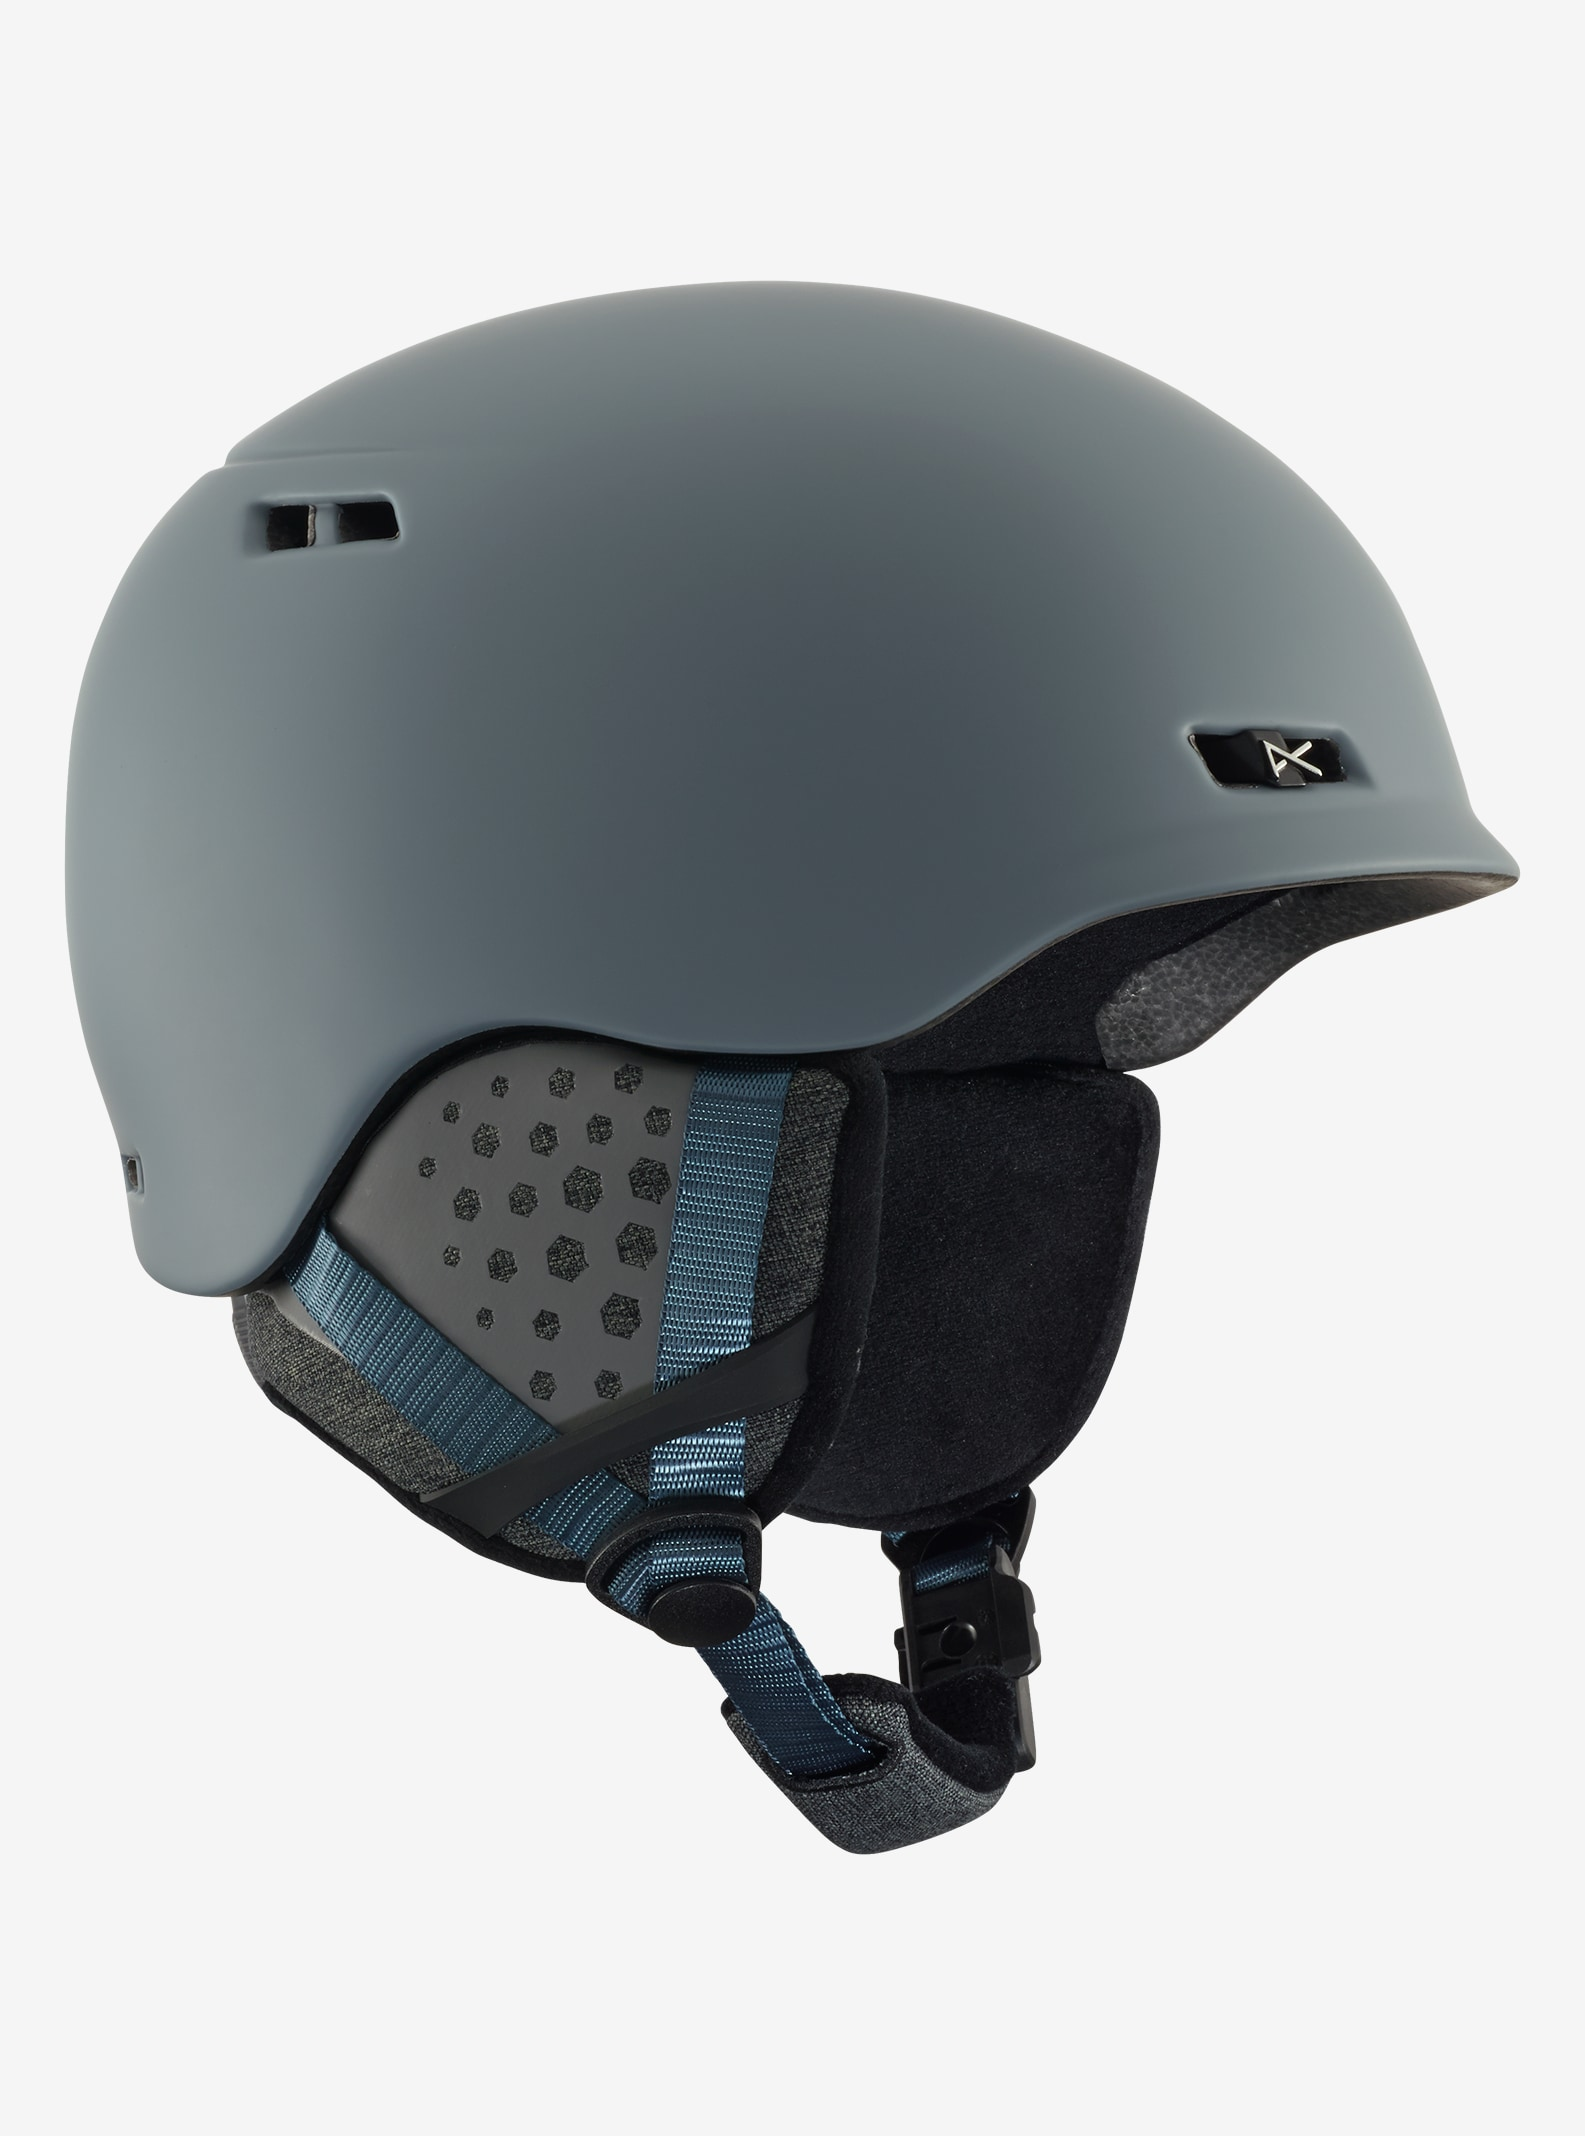 Men's Anon Rodan Helmet shown in Gray